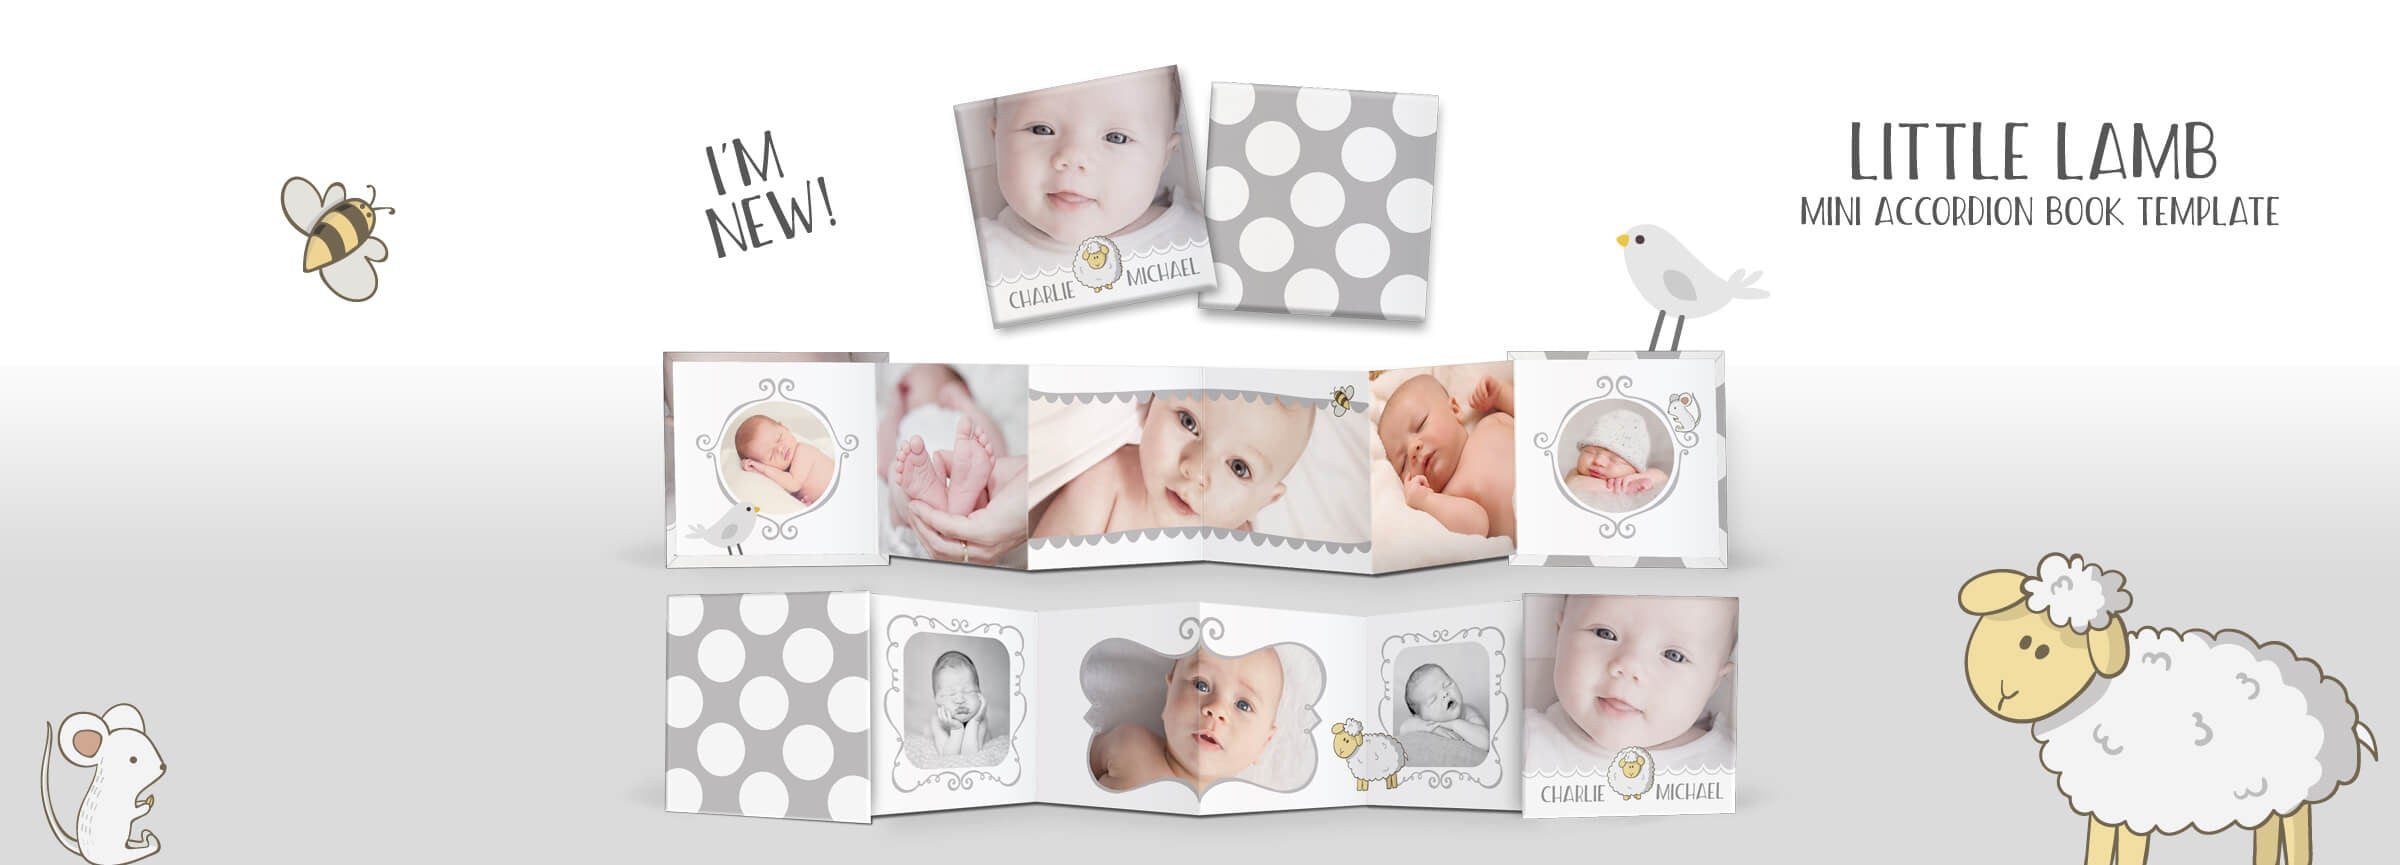 Increase Sales with Easy to Use Pre-Designed Photoshop Templates